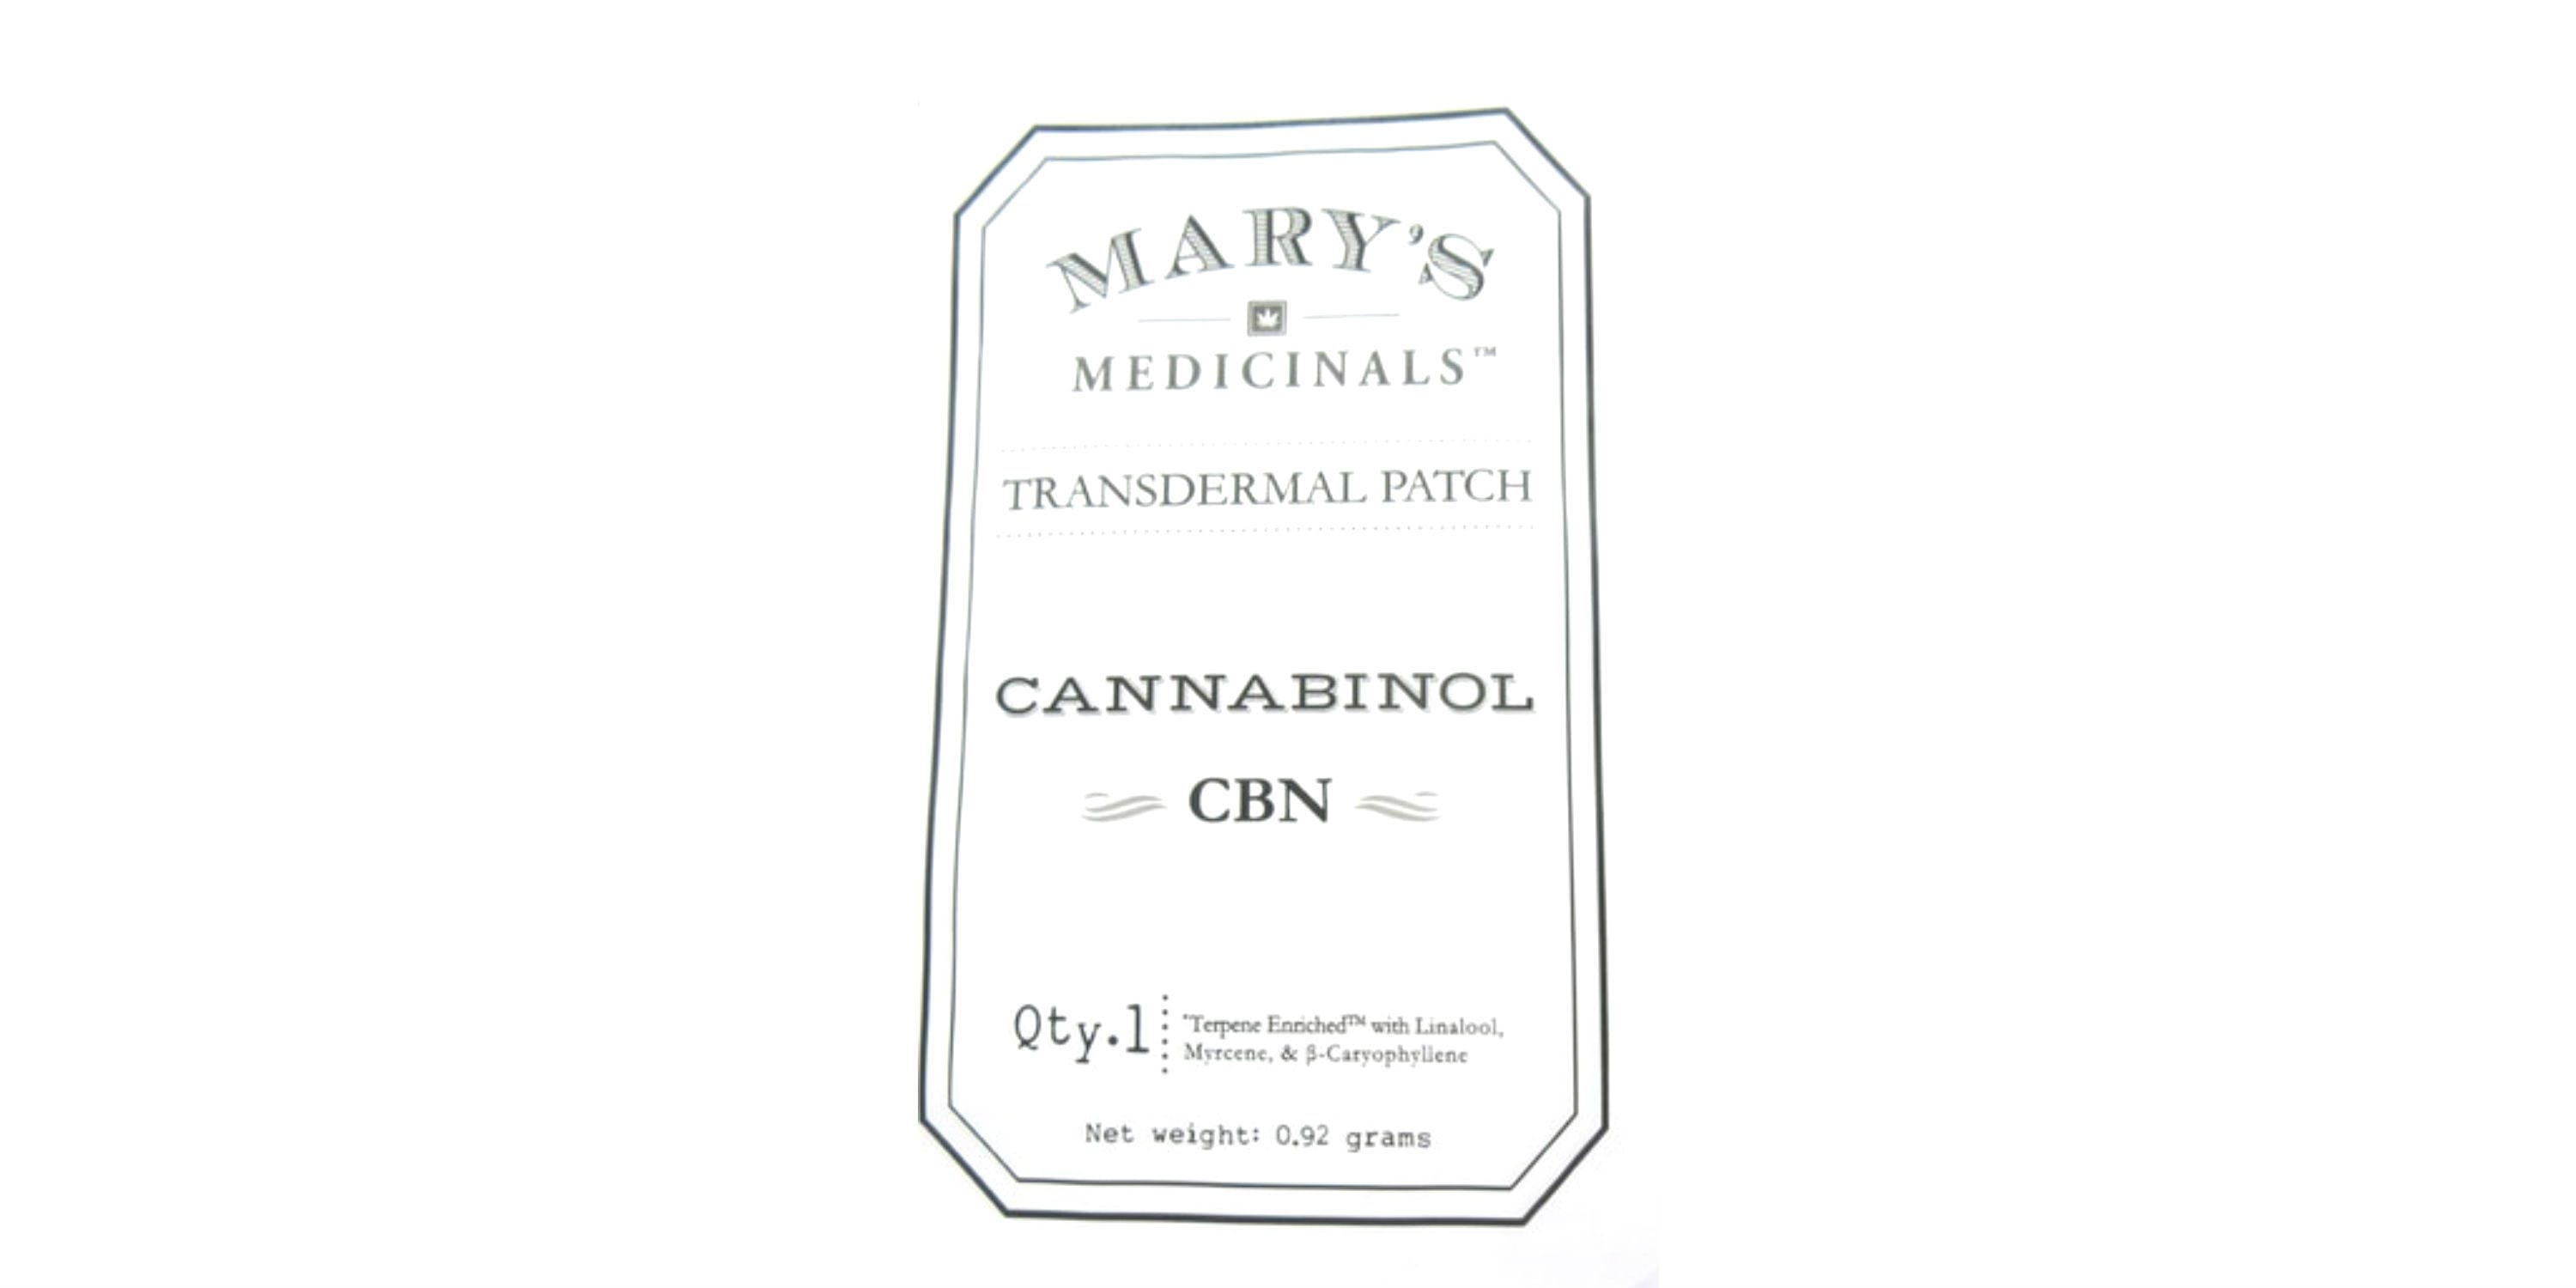 marijuana-dispensaries-8709-fingerboard-rd-frederick-cbn-transdermal-patch-2c-10-mg-marys-medicinals